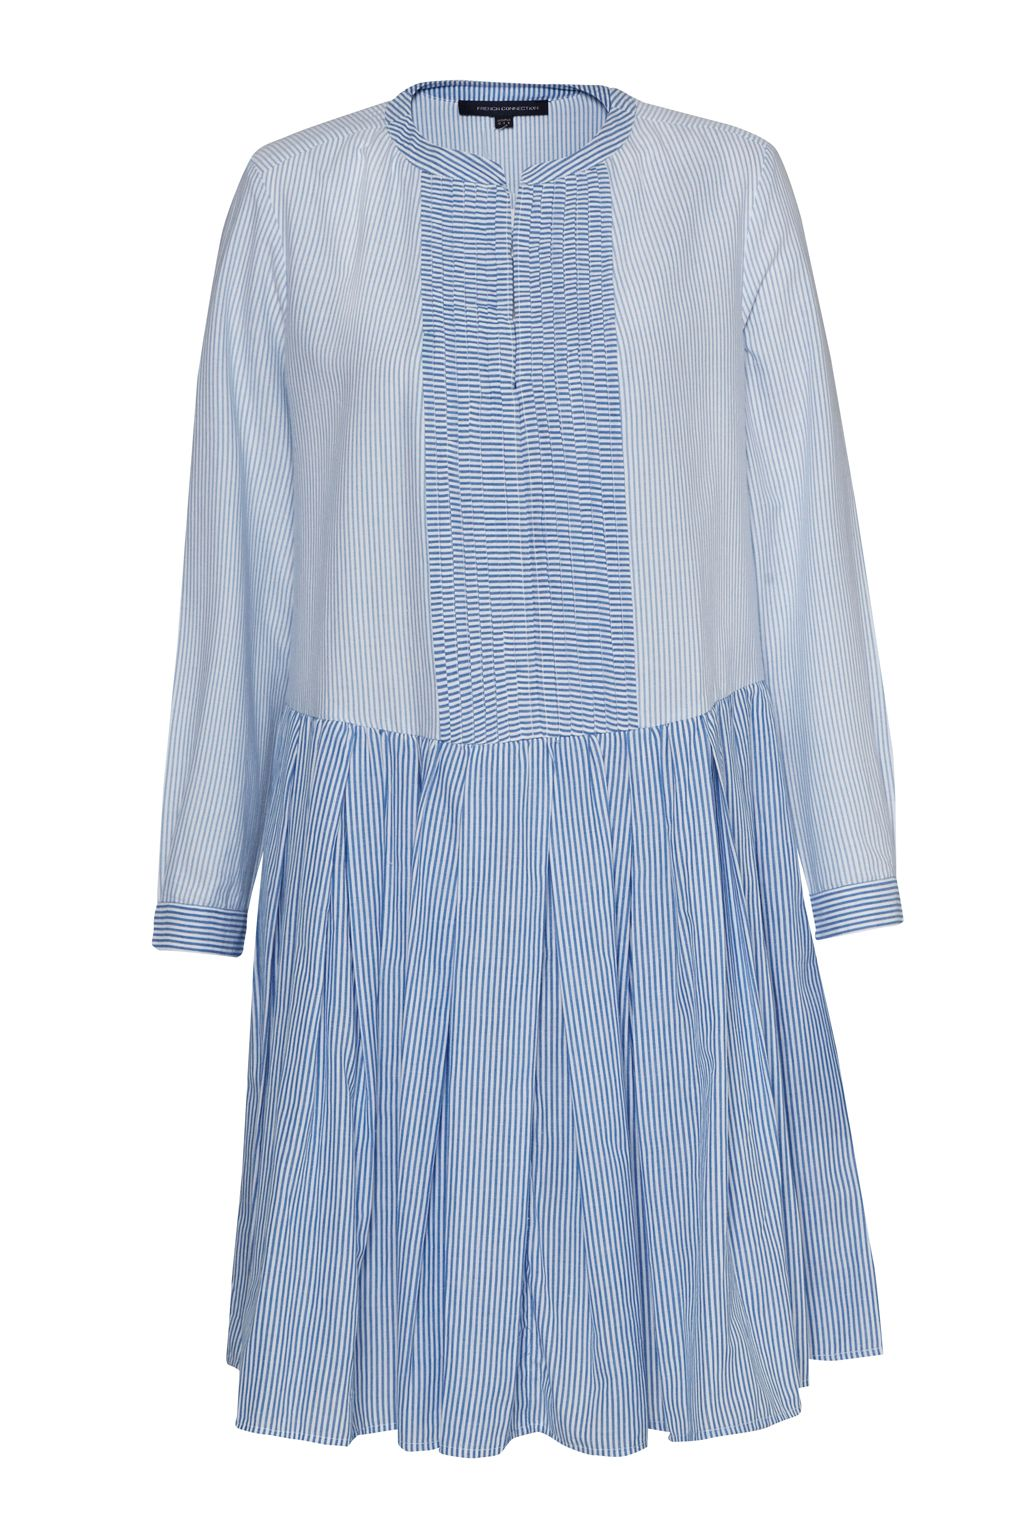 French Connection Nuru Schiffley Mix Striped Dress, Blue